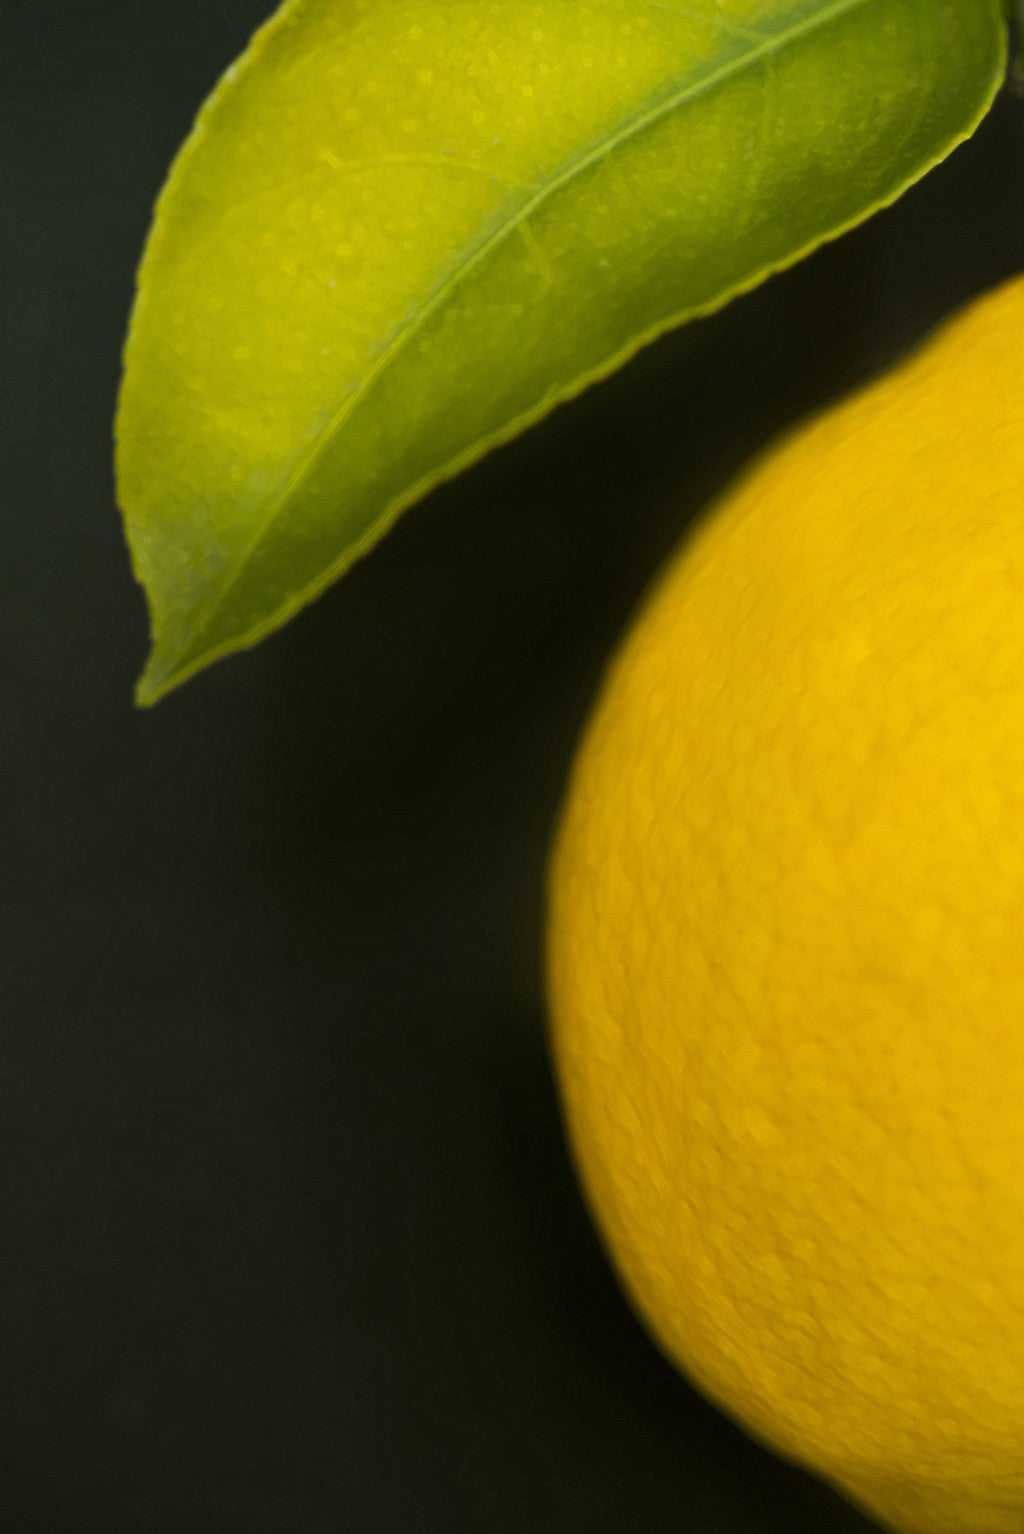 Painted Meyer Lemon